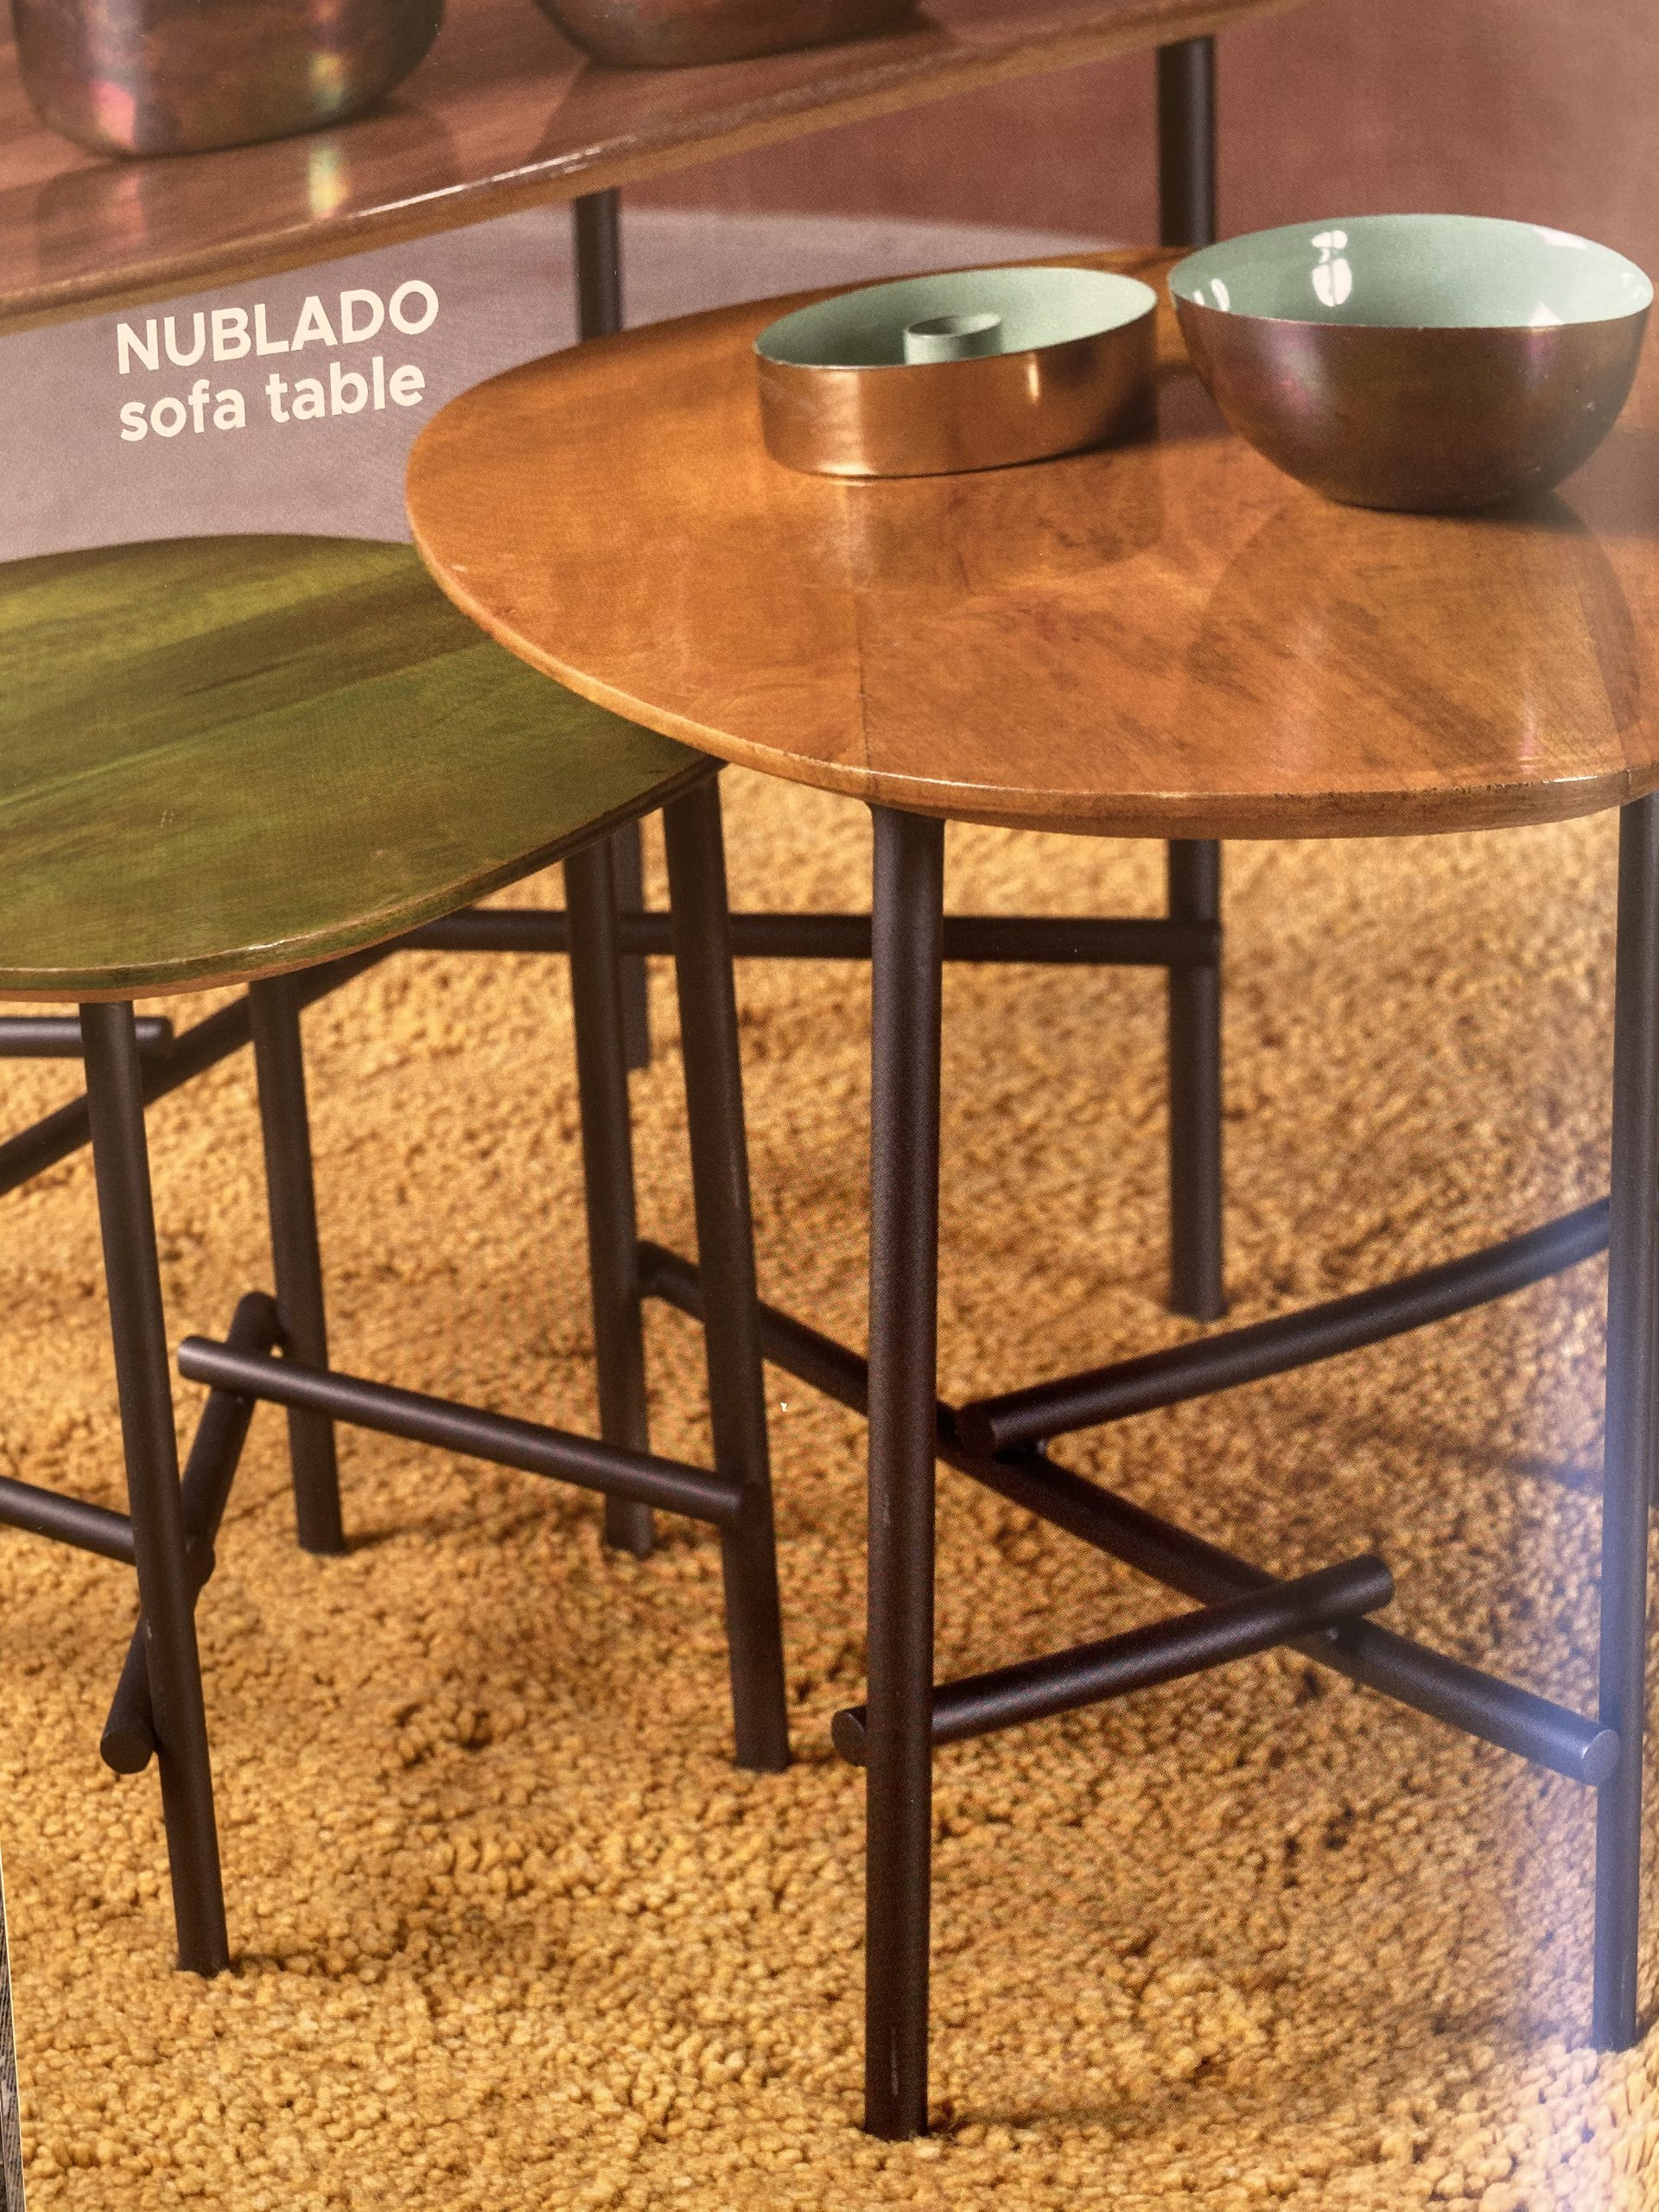 Sofa Table Nublado Mango Earth